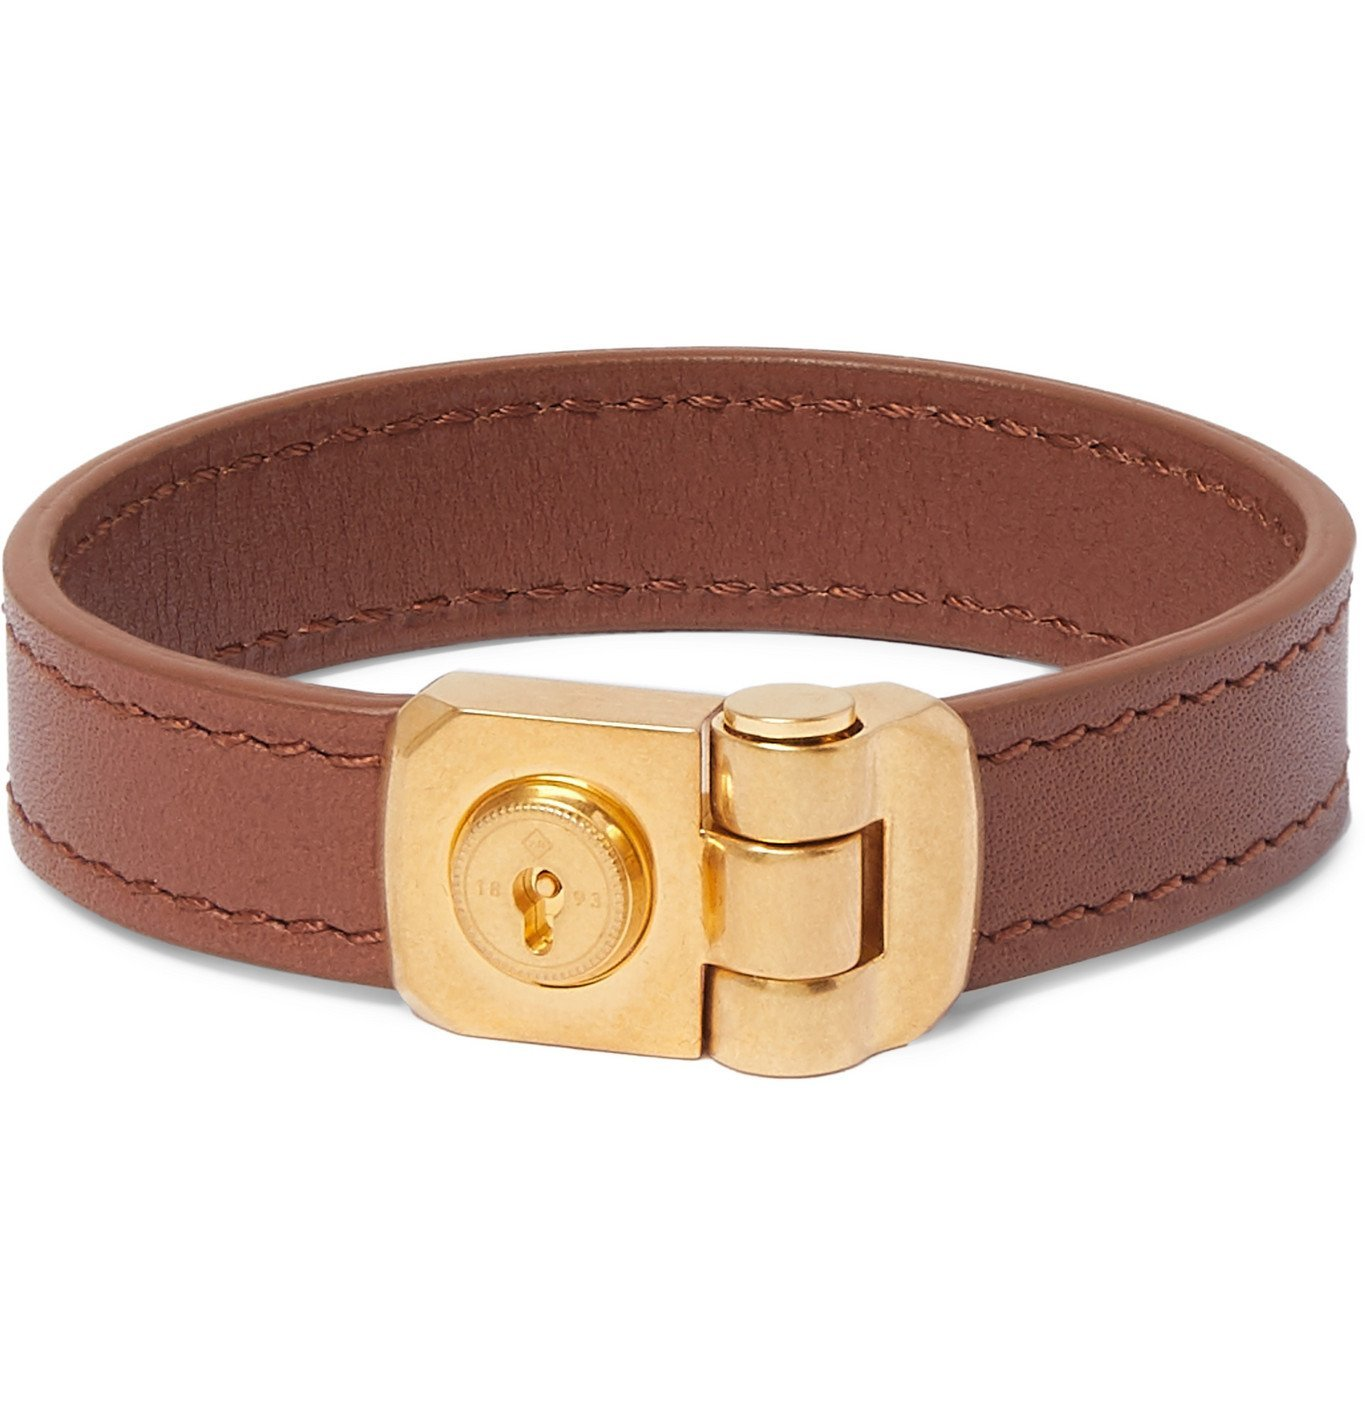 Dunhill - Leather and Gold-Tone Bracelet - Brown